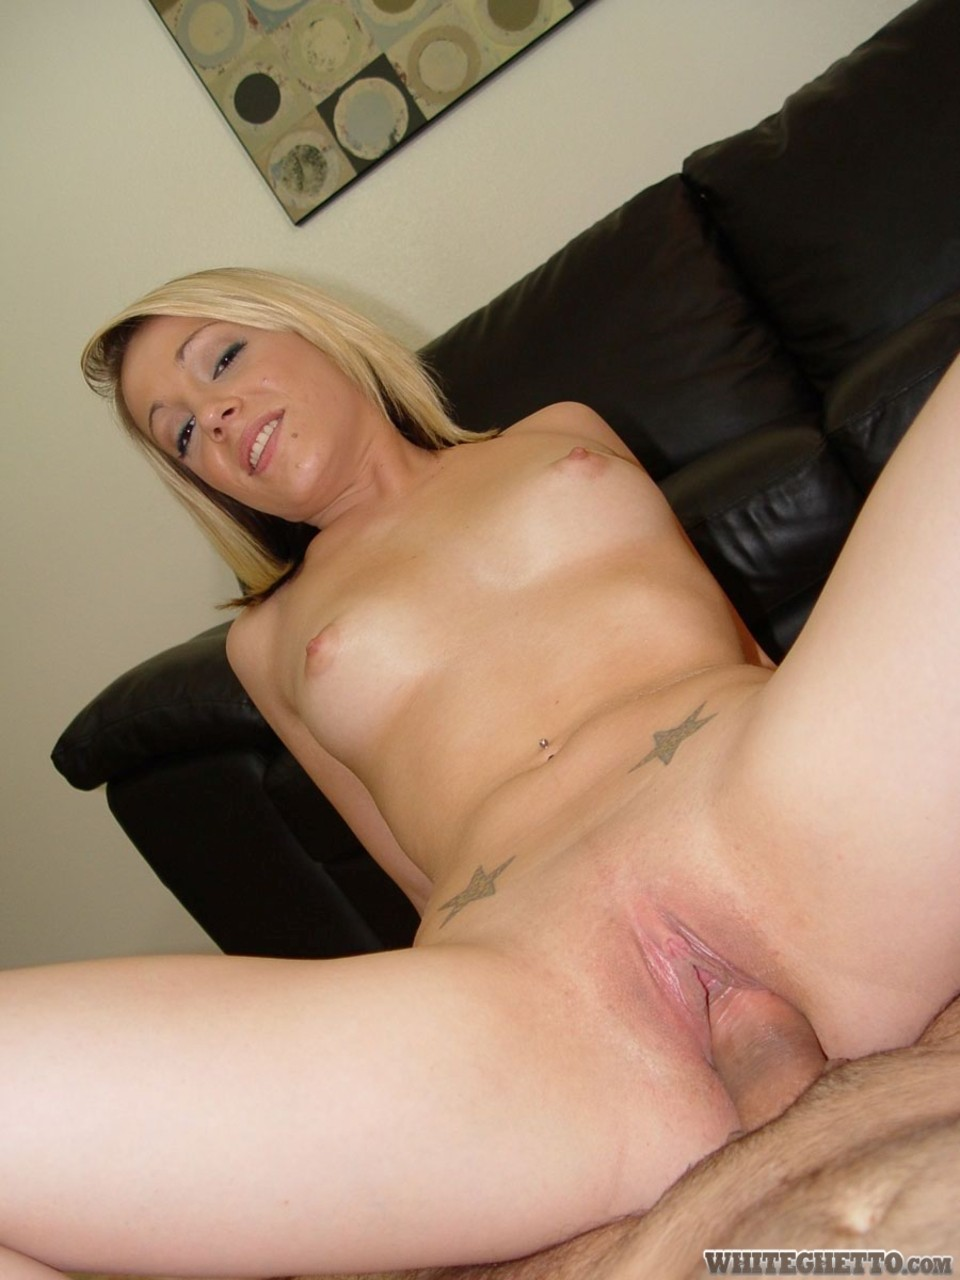 Hot Blonde Wife Creampie